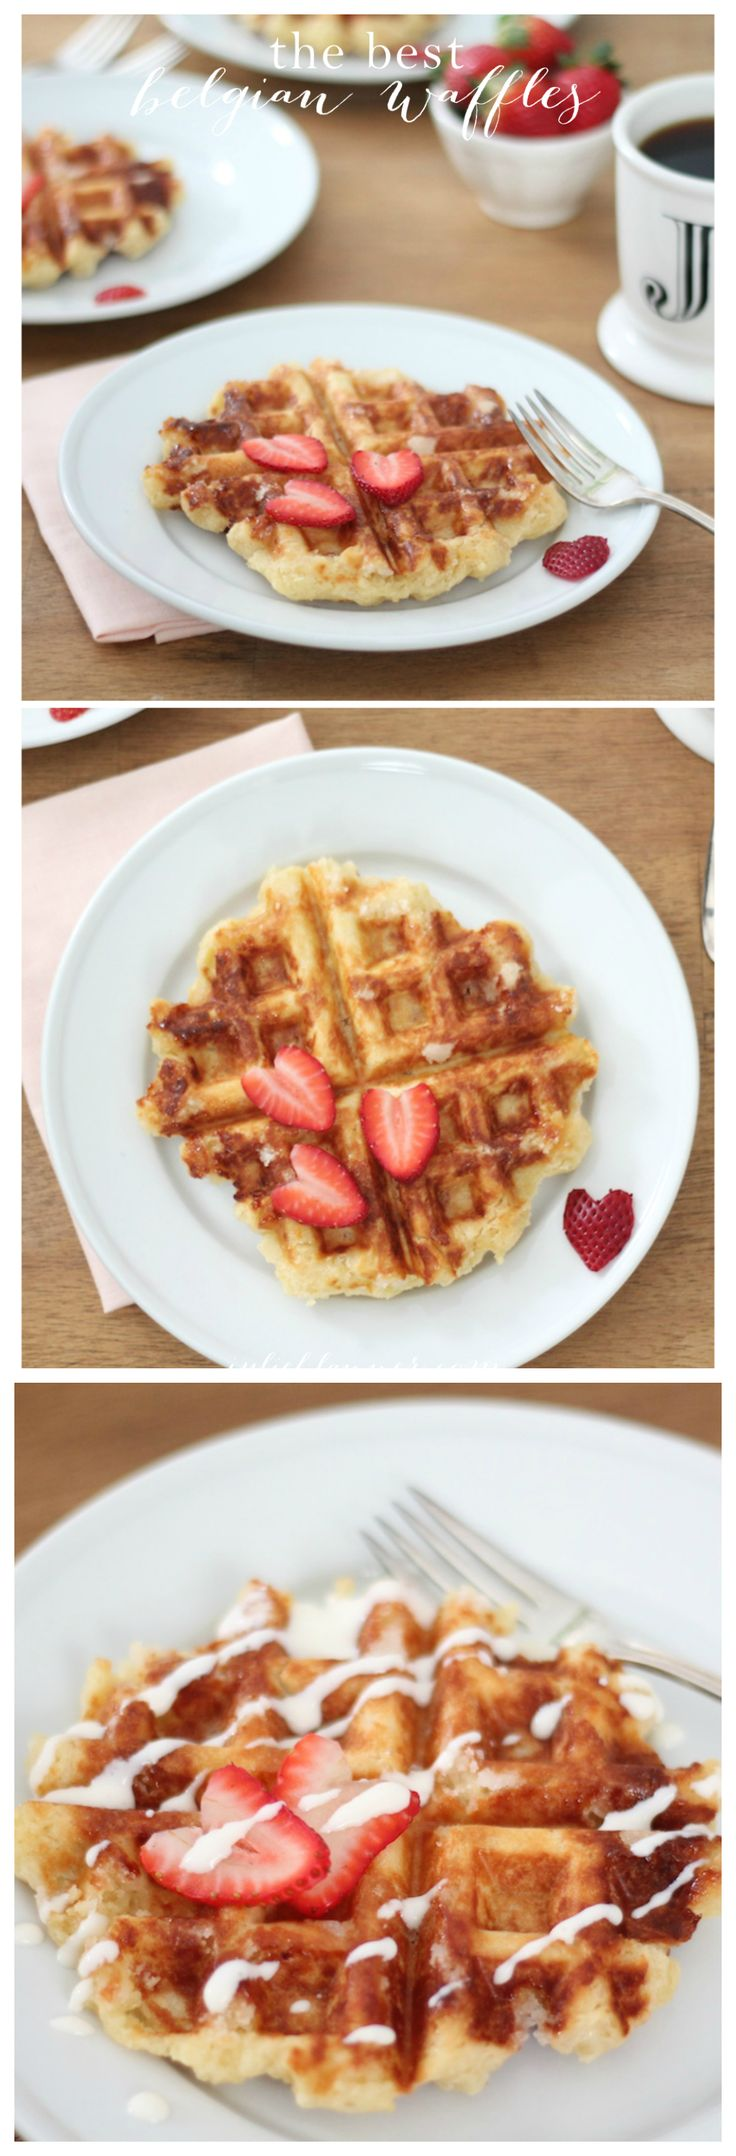 """The best Belgian waffle recipe with creme fraiche & a """"secret"""" ingredient. These waffles are great for breakfast, brunch or dessert!"""